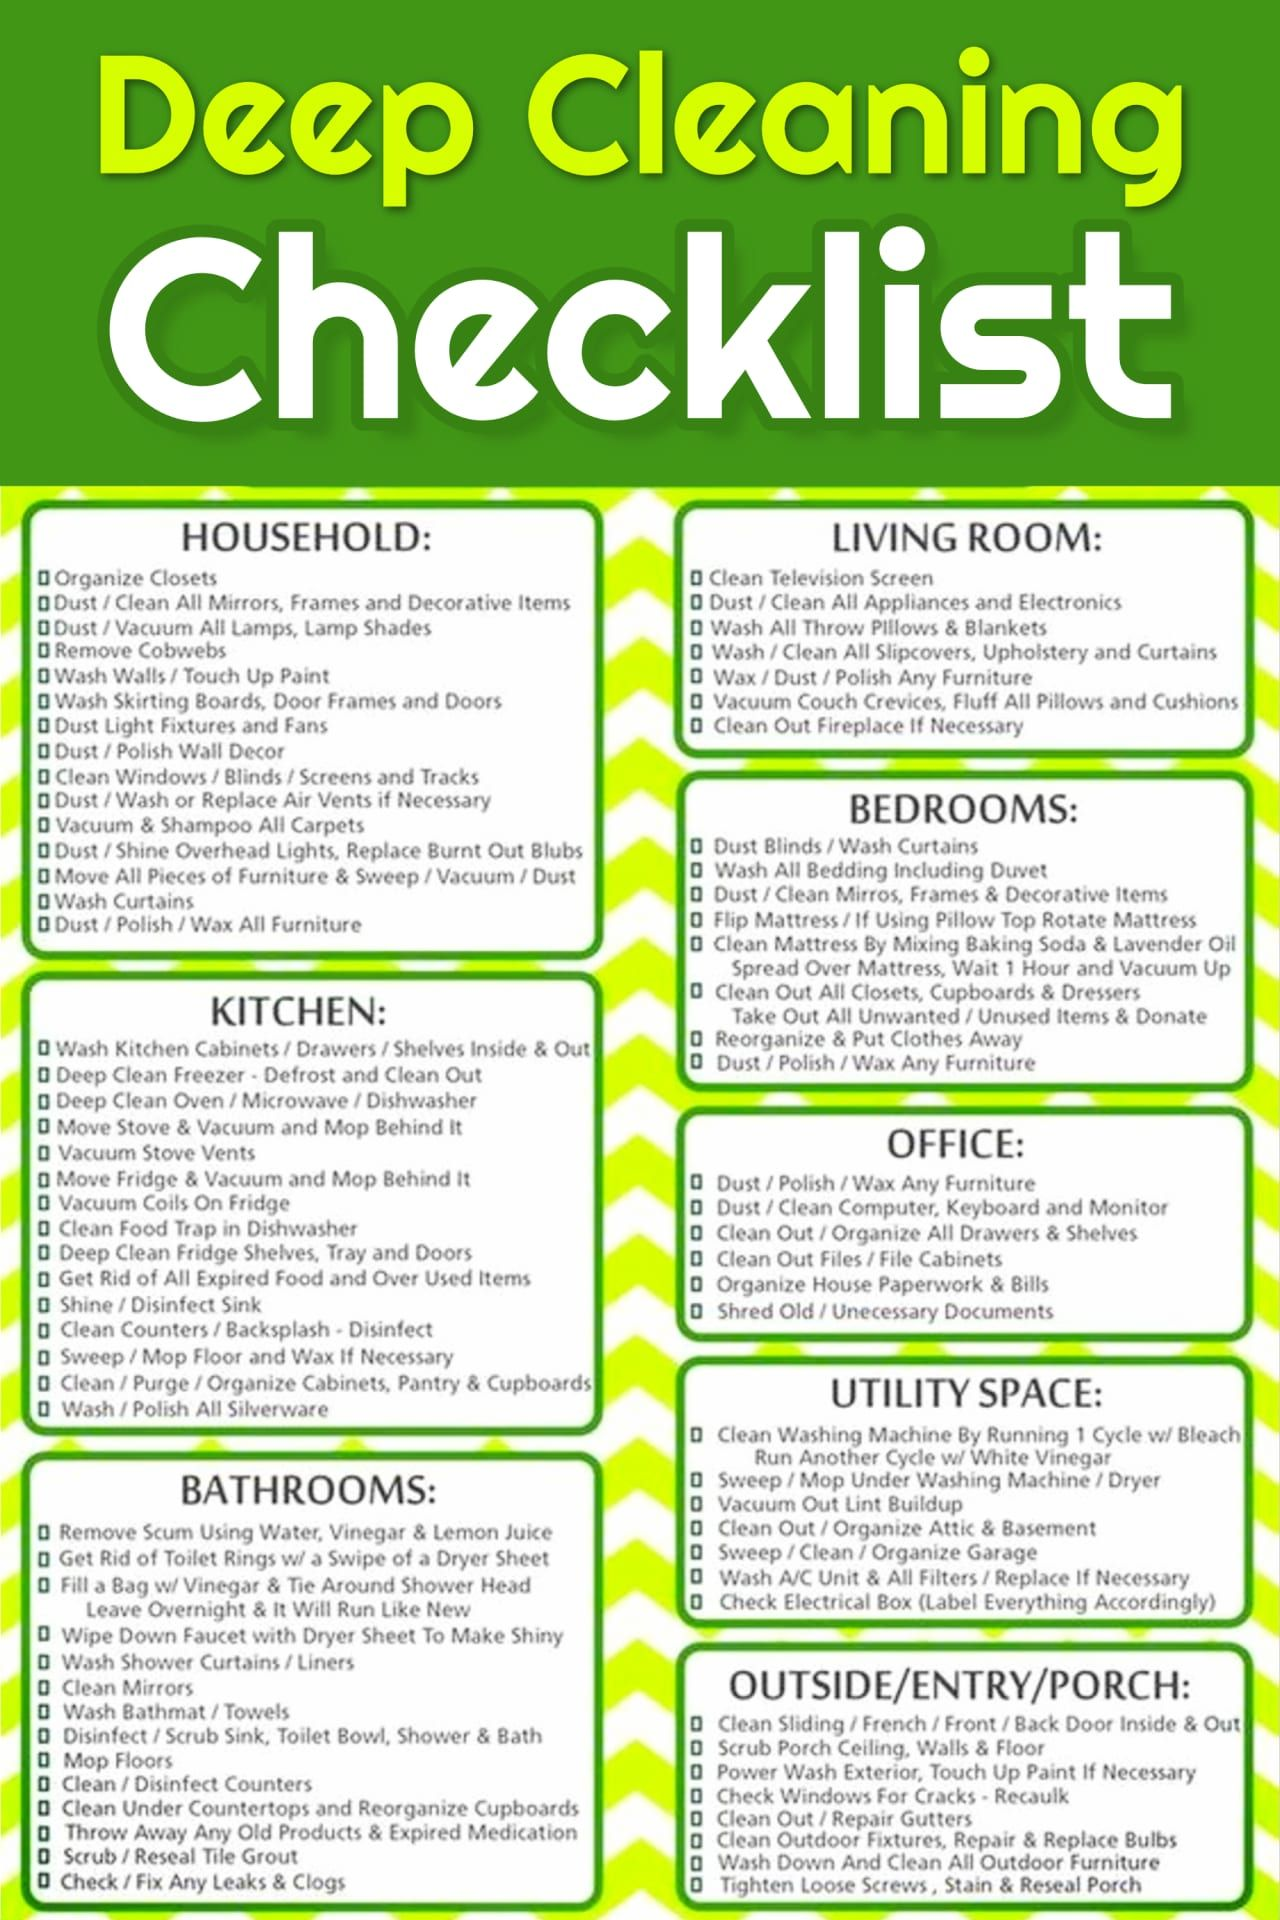 Deep Cleaning Checklist (Free Printable images